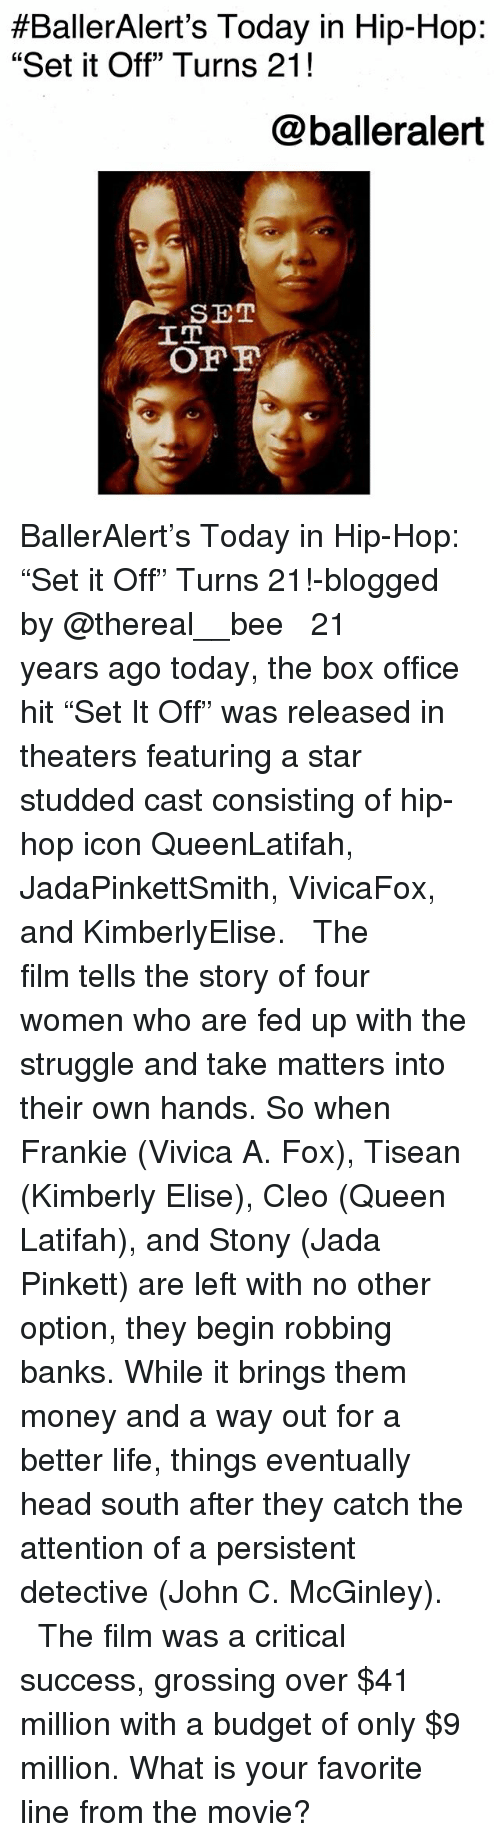 "elise:  #BallerAlert's Today in Hip-Hop:  ""Set it Off"" Turns 21!  @balleralert  SET  IT BallerAlert's Today in Hip-Hop: ""Set it Off"" Turns 21!-blogged by @thereal__bee ⠀⠀⠀⠀⠀⠀⠀⠀⠀ ⠀⠀ 21 years ago today, the box office hit ""Set It Off"" was released in theaters featuring a star studded cast consisting of hip-hop icon QueenLatifah, JadaPinkettSmith, VivicaFox, and KimberlyElise. ⠀⠀⠀⠀⠀⠀⠀⠀⠀ ⠀⠀ The film tells the story of four women who are fed up with the struggle and take matters into their own hands. So when Frankie (Vivica A. Fox), Tisean (Kimberly Elise), Cleo (Queen Latifah), and Stony (Jada Pinkett) are left with no other option, they begin robbing banks. While it brings them money and a way out for a better life, things eventually head south after they catch the attention of a persistent detective (John C. McGinley). ⠀⠀⠀⠀⠀⠀⠀⠀⠀ ⠀⠀ The film was a critical success, grossing over $41 million with a budget of only $9 million. What is your favorite line from the movie?"